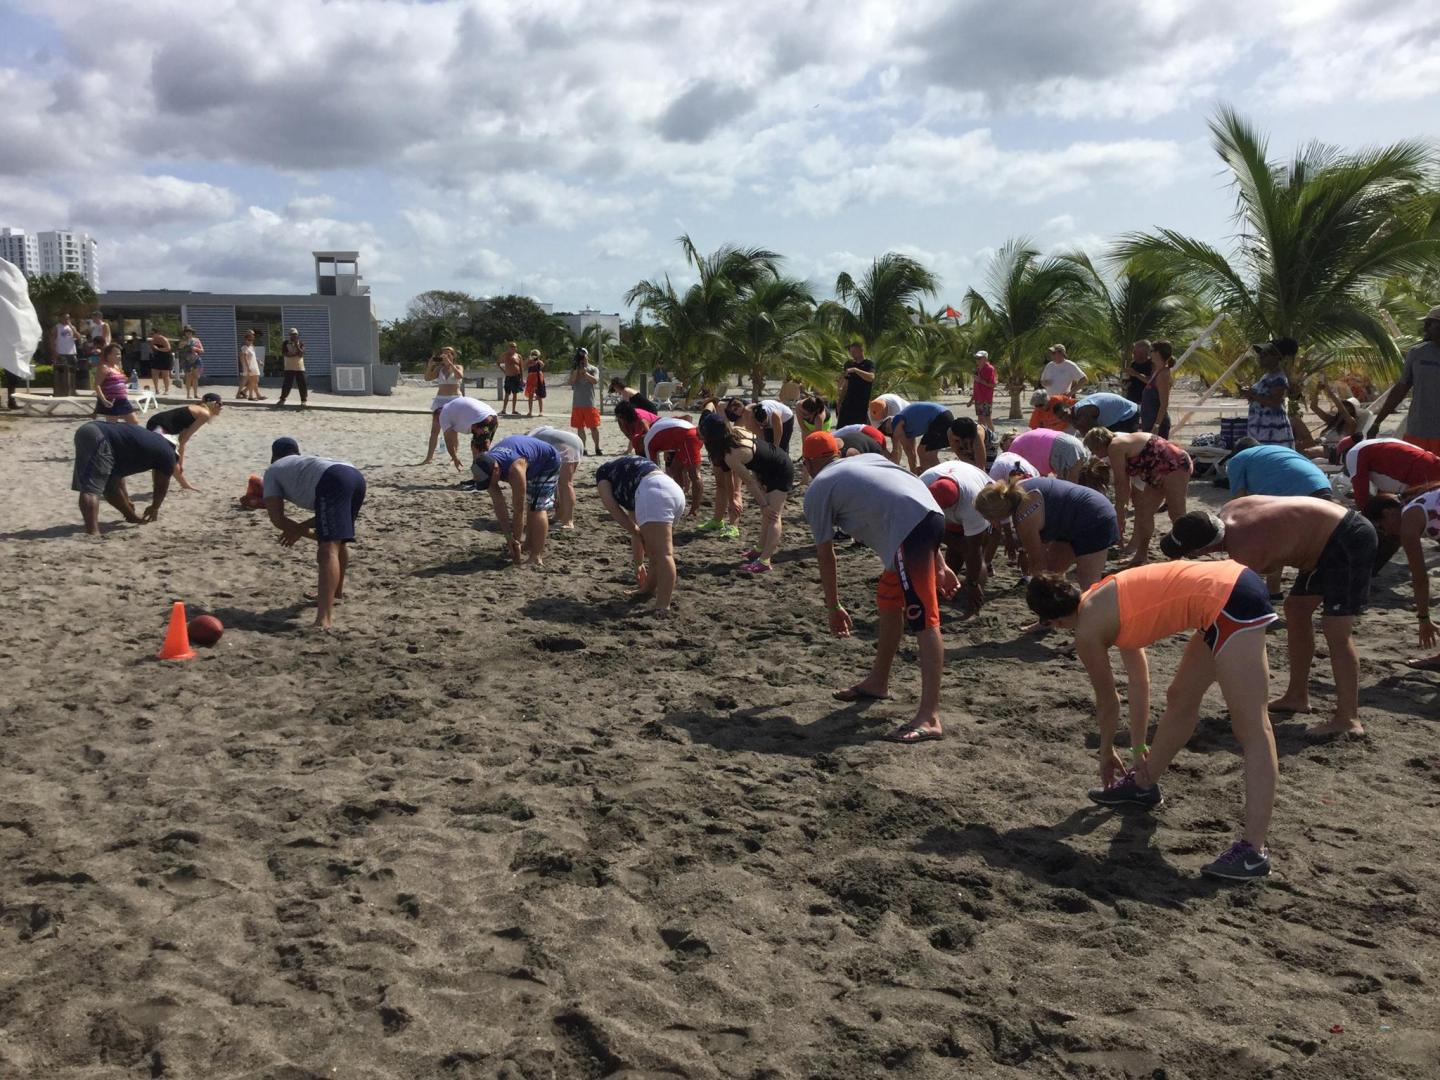 Travel Diary: Panama with the Chicago Bears